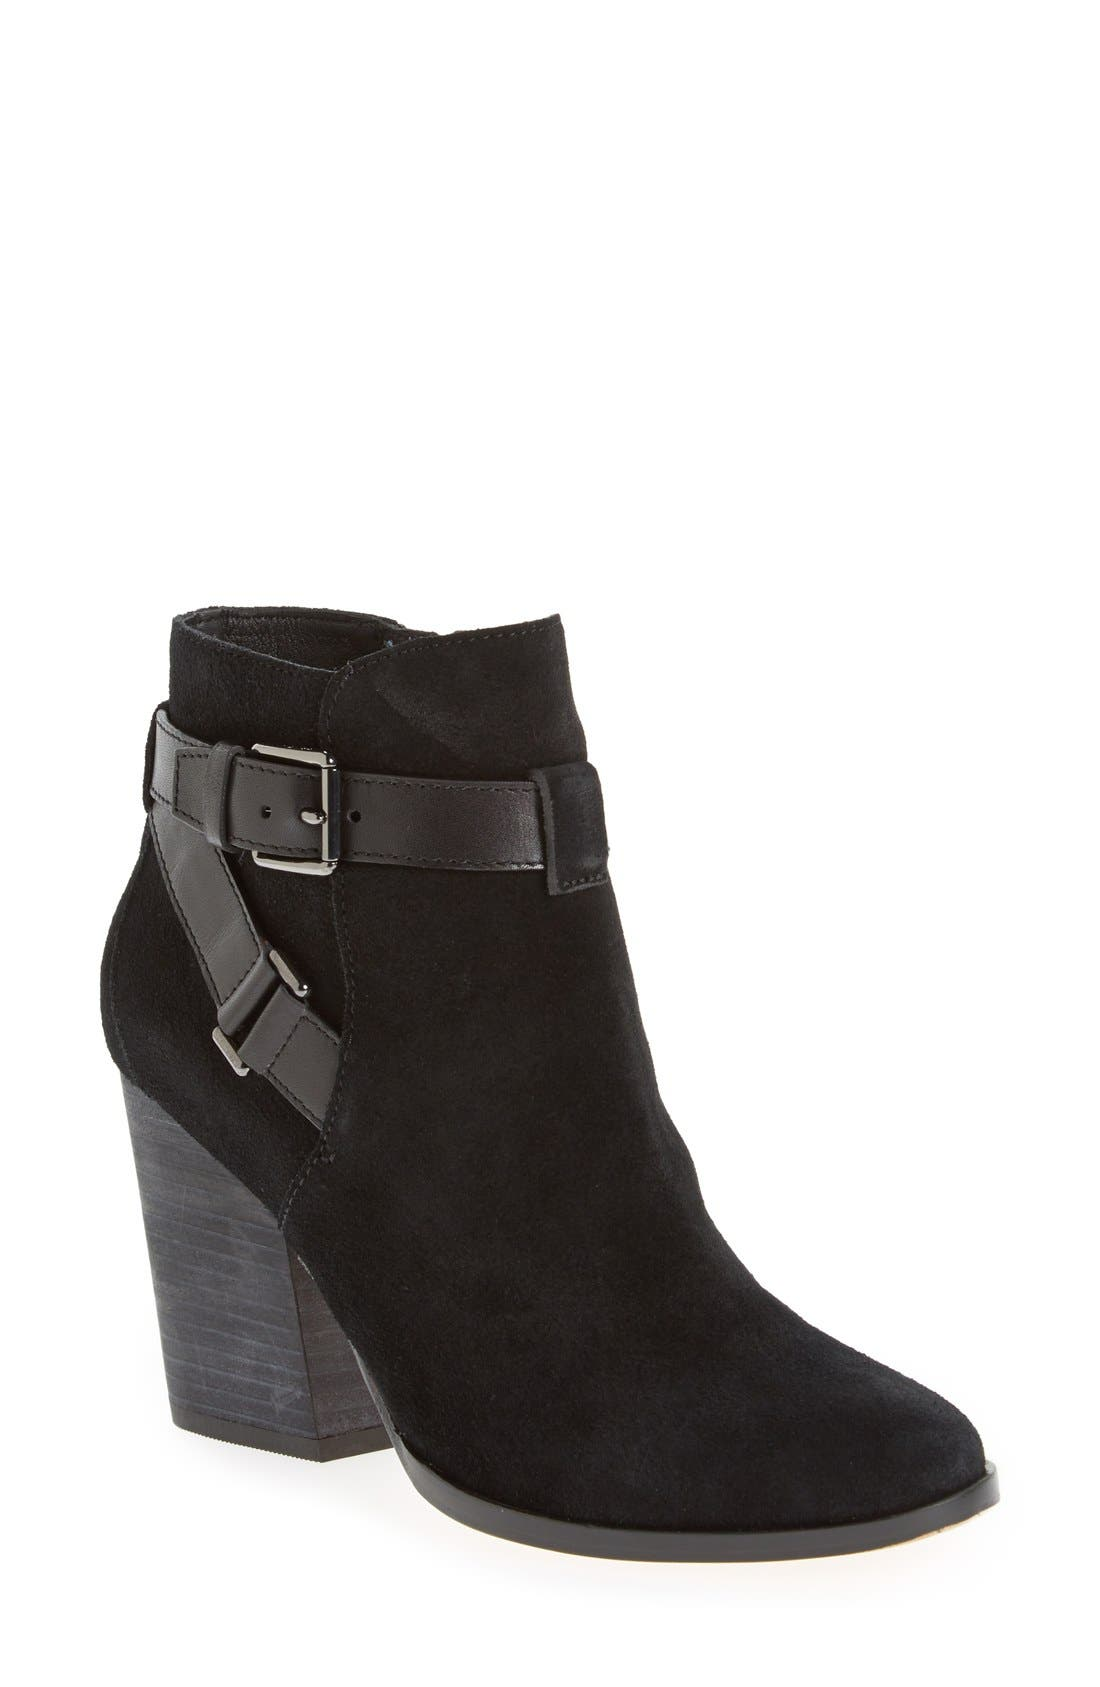 Alternate Image 1 Selected - Cole Haan 'Minna' Bootie (Women)